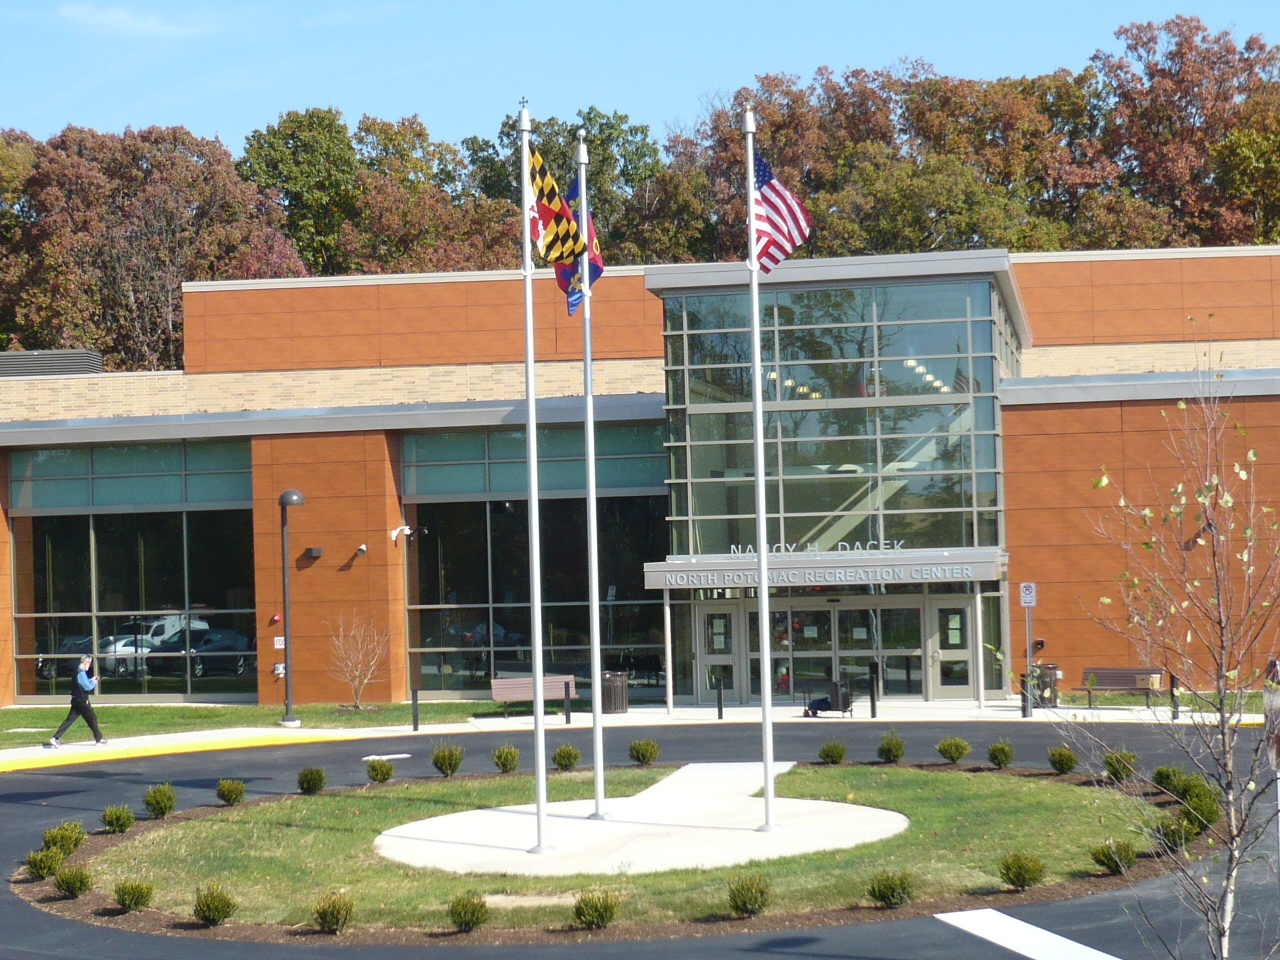 Exterior: North Potomac Community Recreation Center